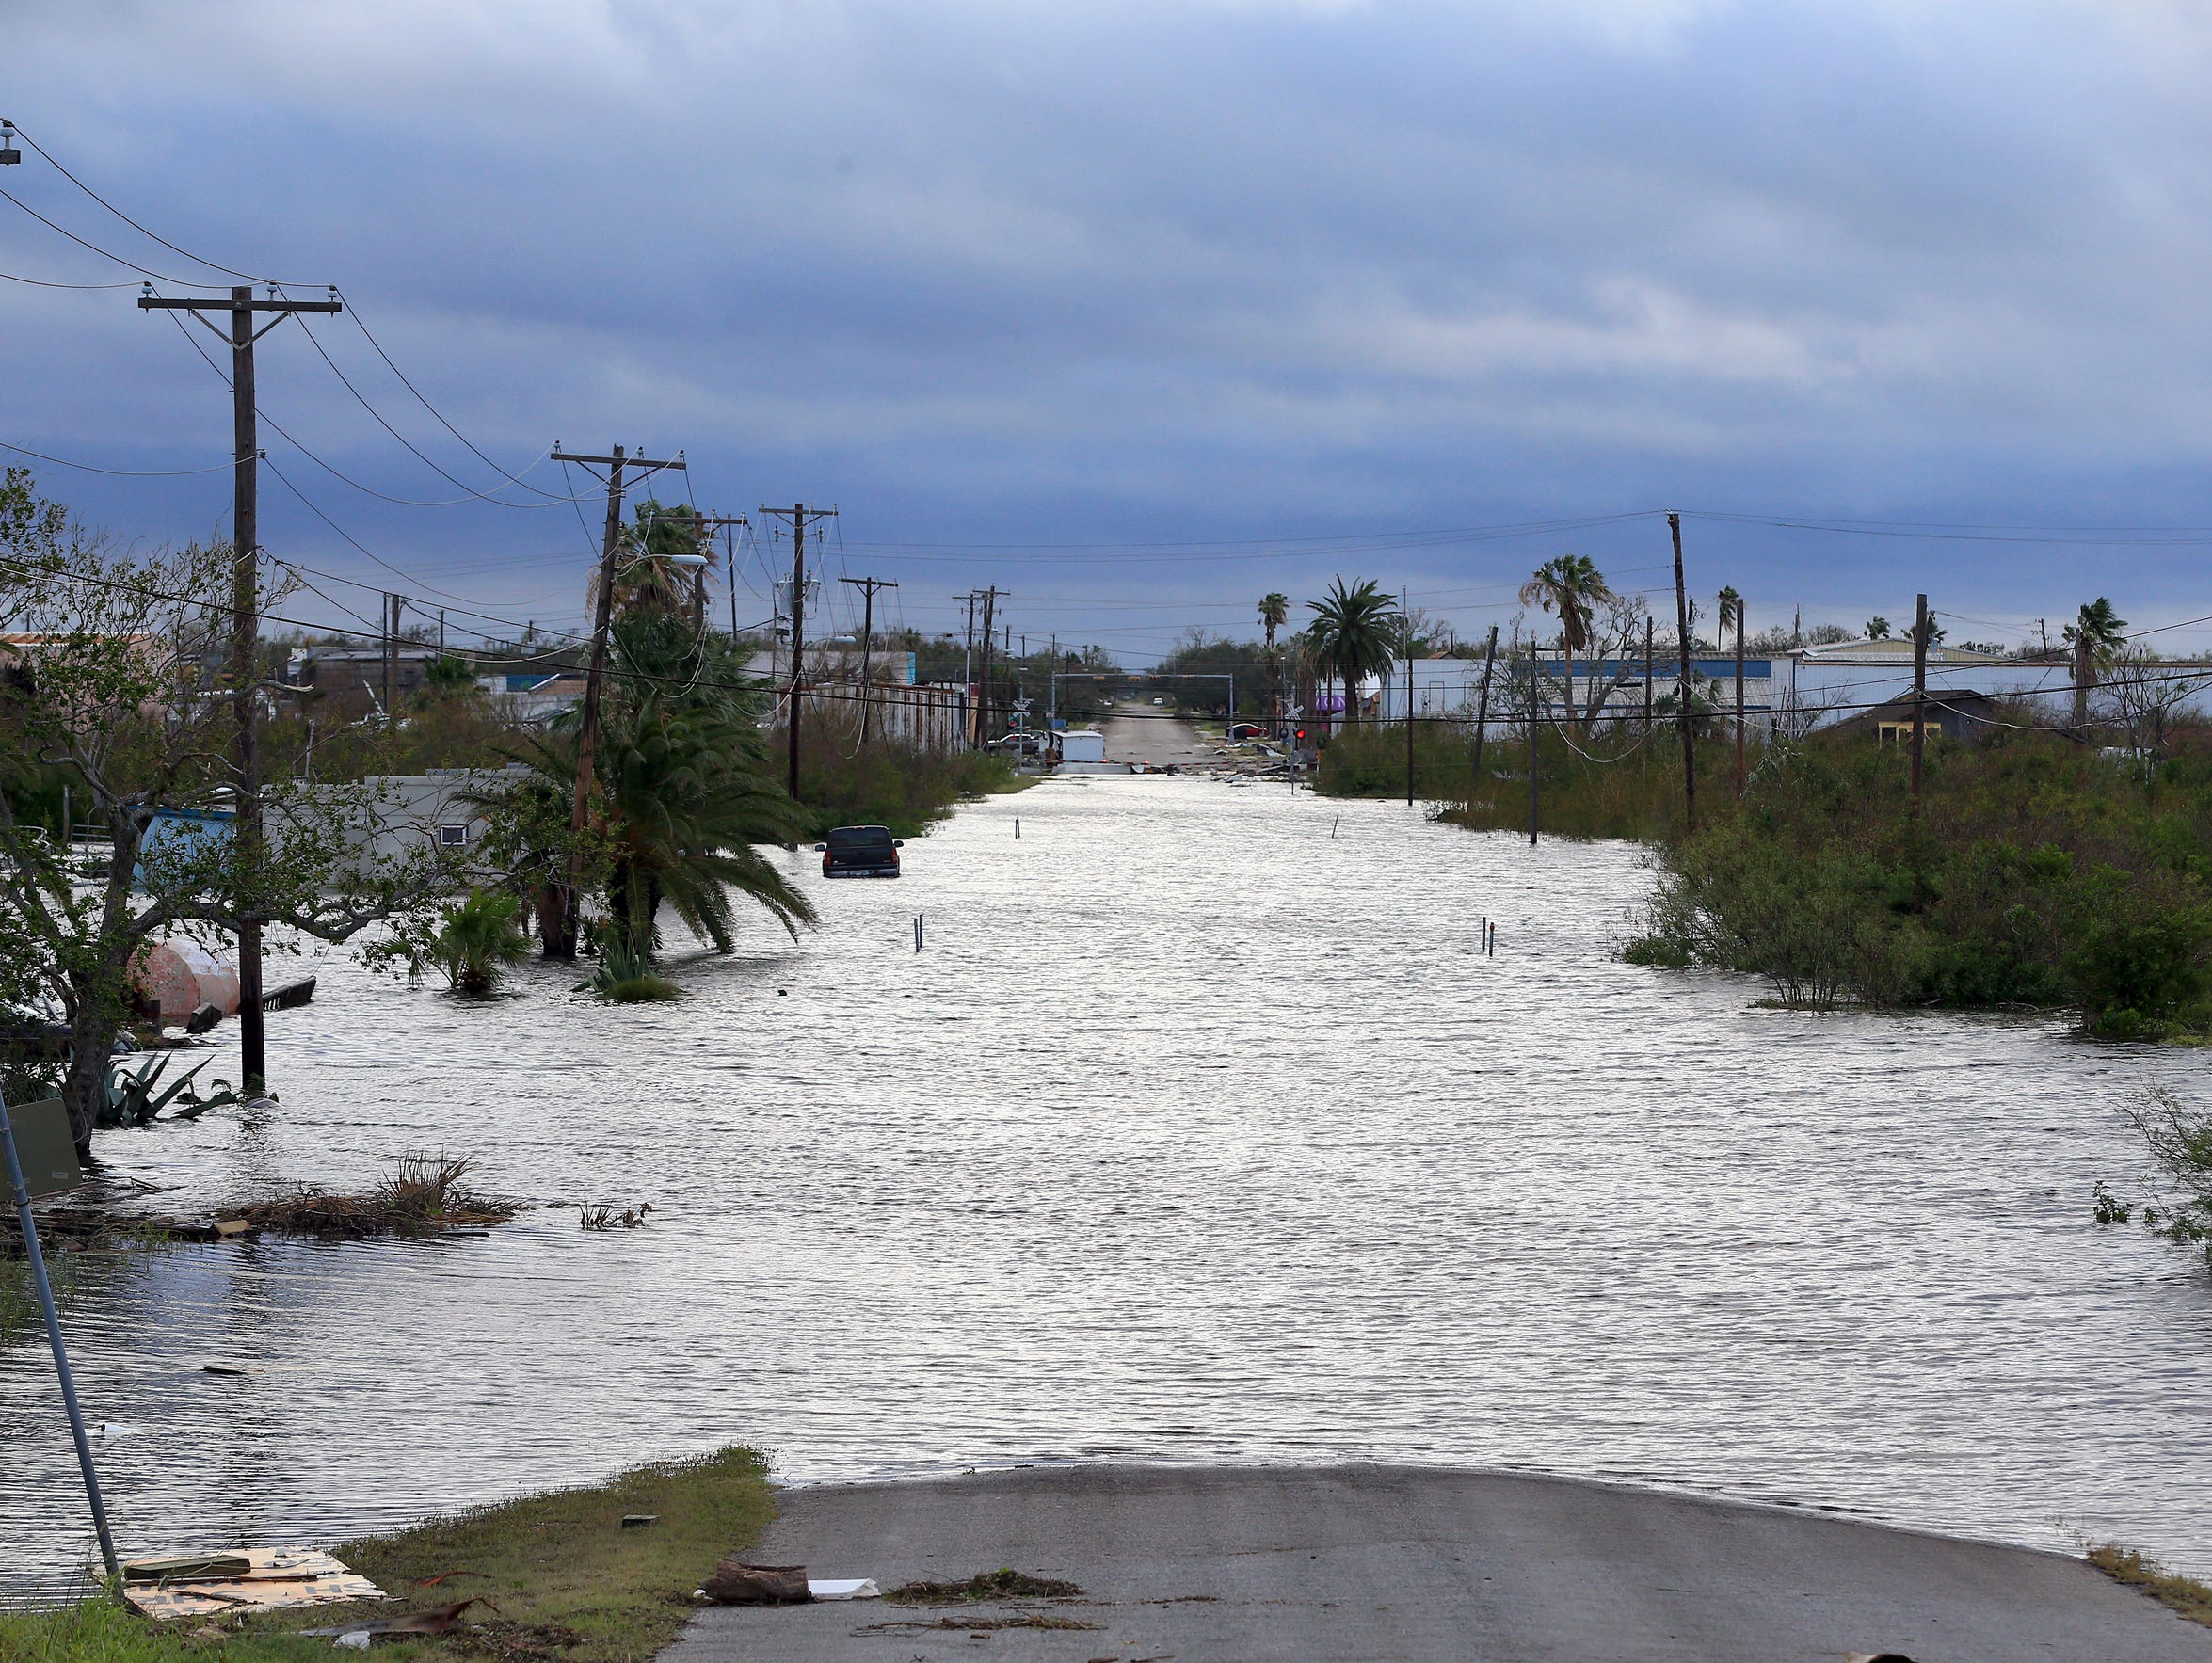 Hours after Hurricane Harvey made landfall, a road in Aransas Pass remains submerged in this Aug. 26, 2017, file photo. Aransas Pass was among Texas Gulf Coast cities that suffered severe flood damage in the storm.